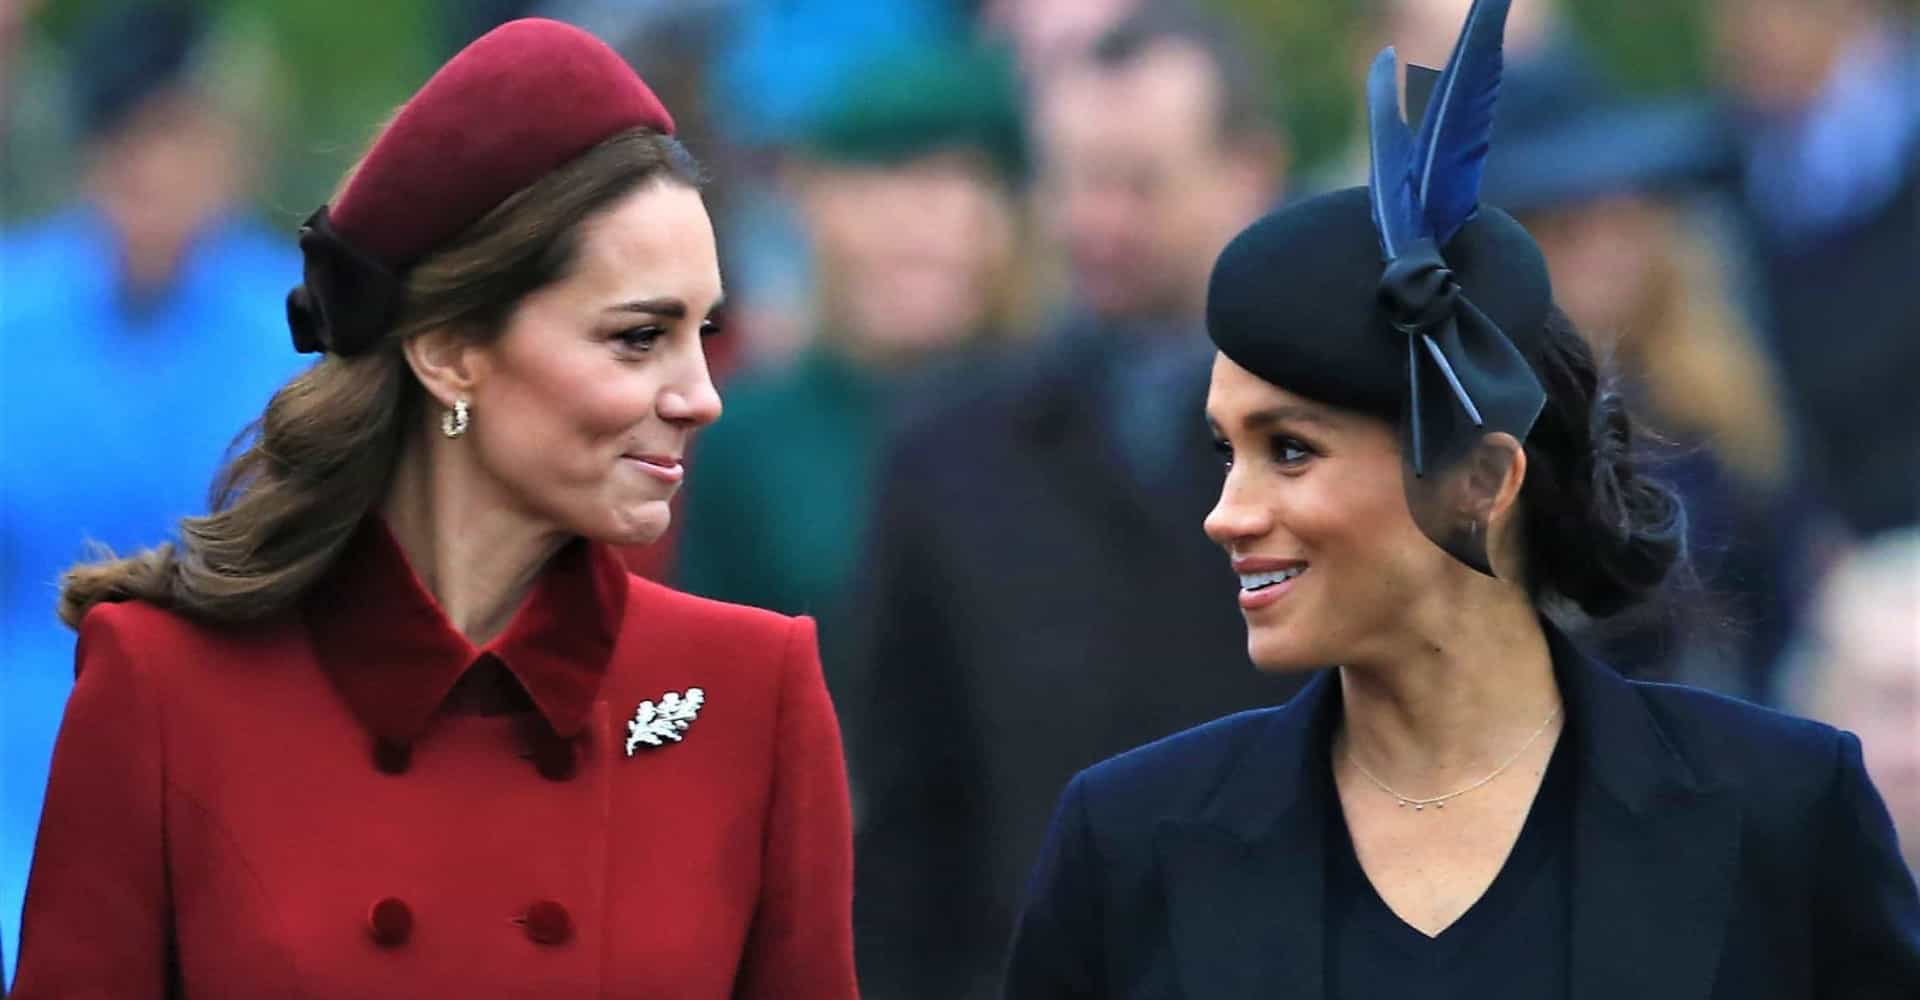 Meghan vs Kate: kumpi herttuattarista on suosikkisi?